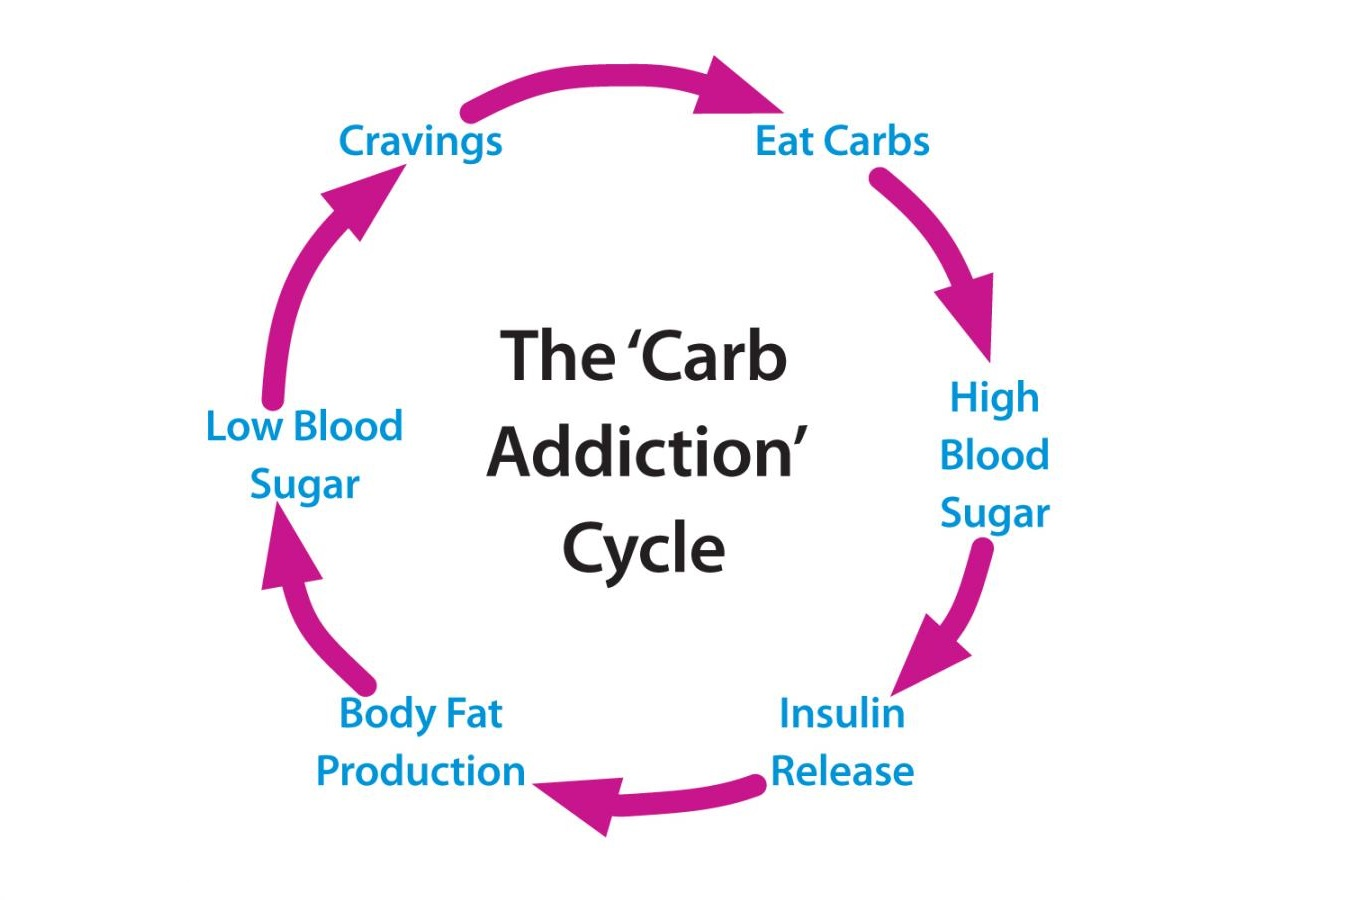 Best Way to Lose Weight in 2018 - Carb Cycle